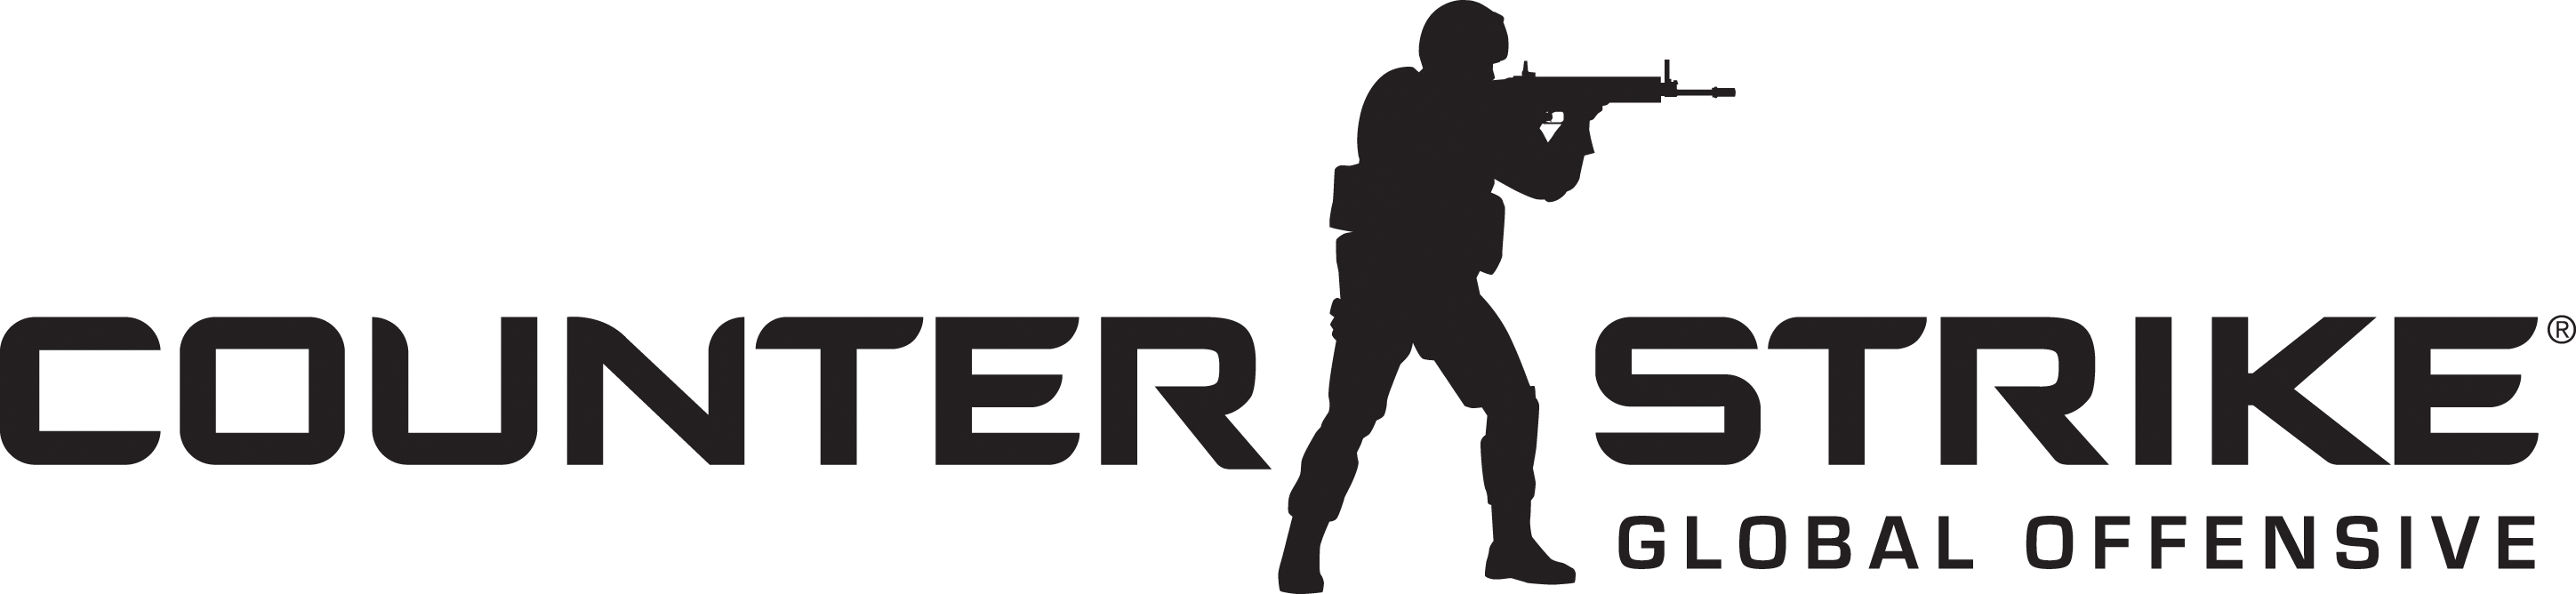 Cs go logo png. R globaloffensive banner competition